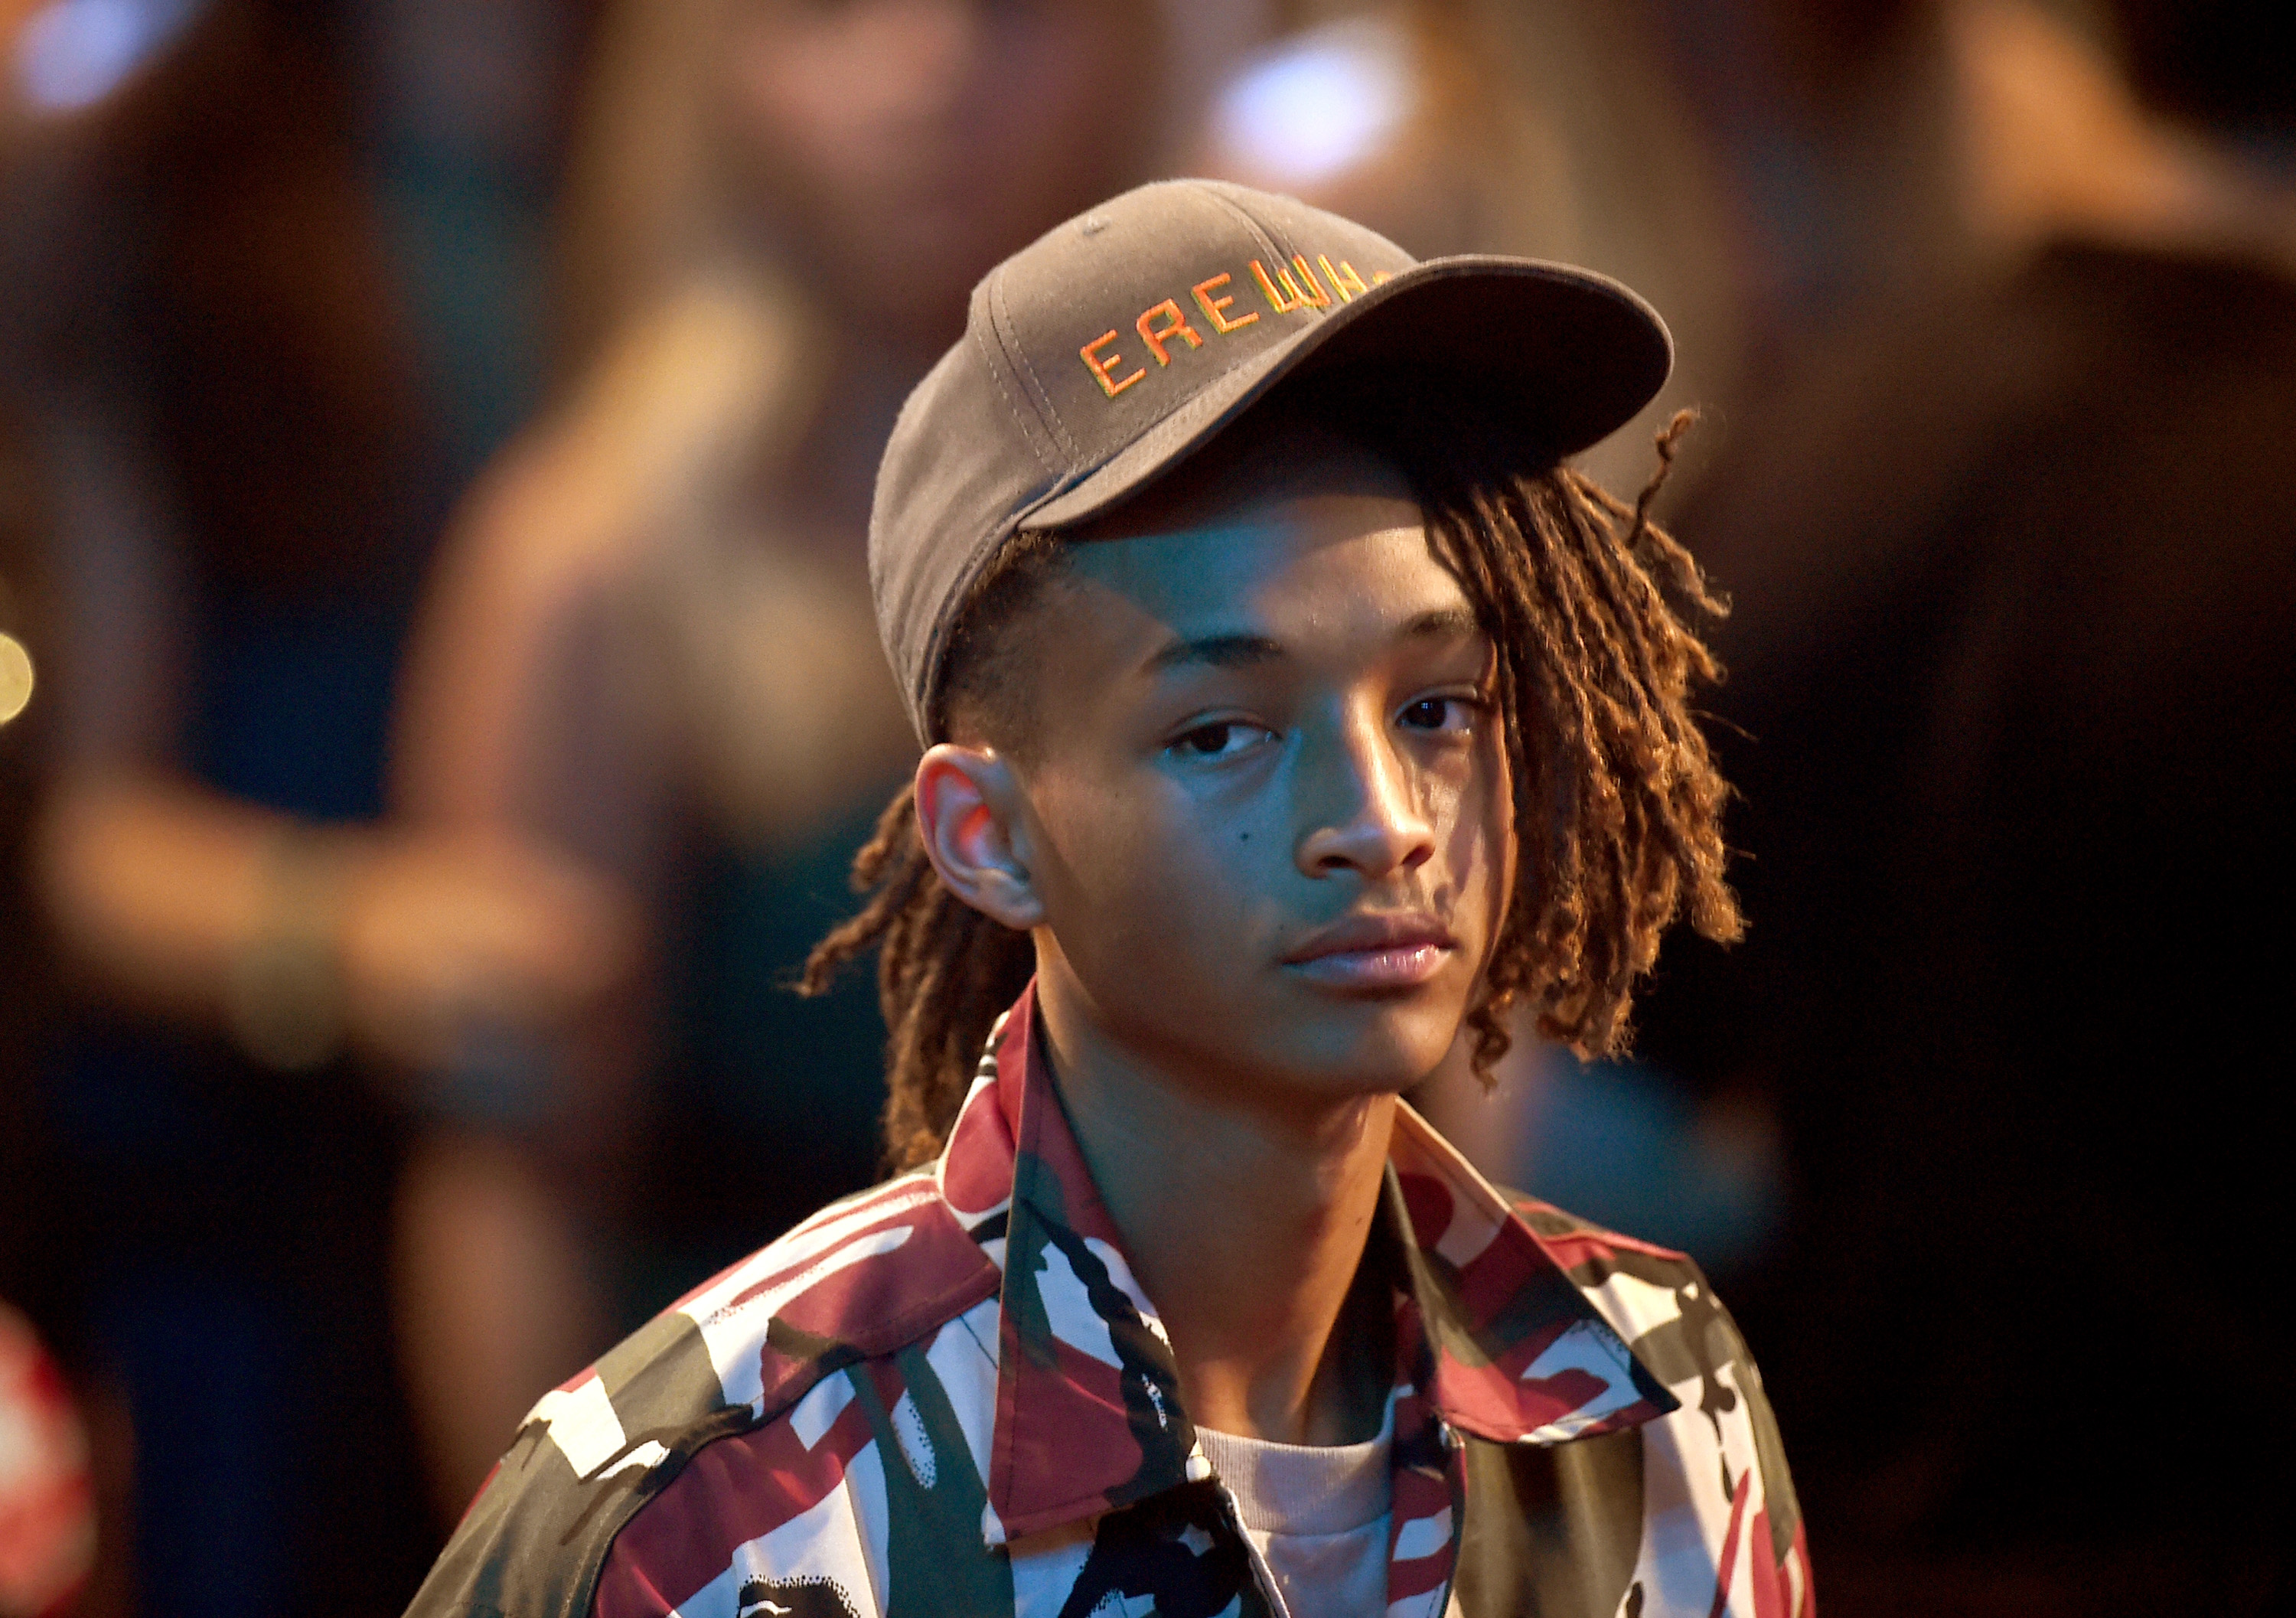 Jaden Smith attends the 2015 MTV Video Music Awards in Los Angeles, CA on Aug. 30, 2015.